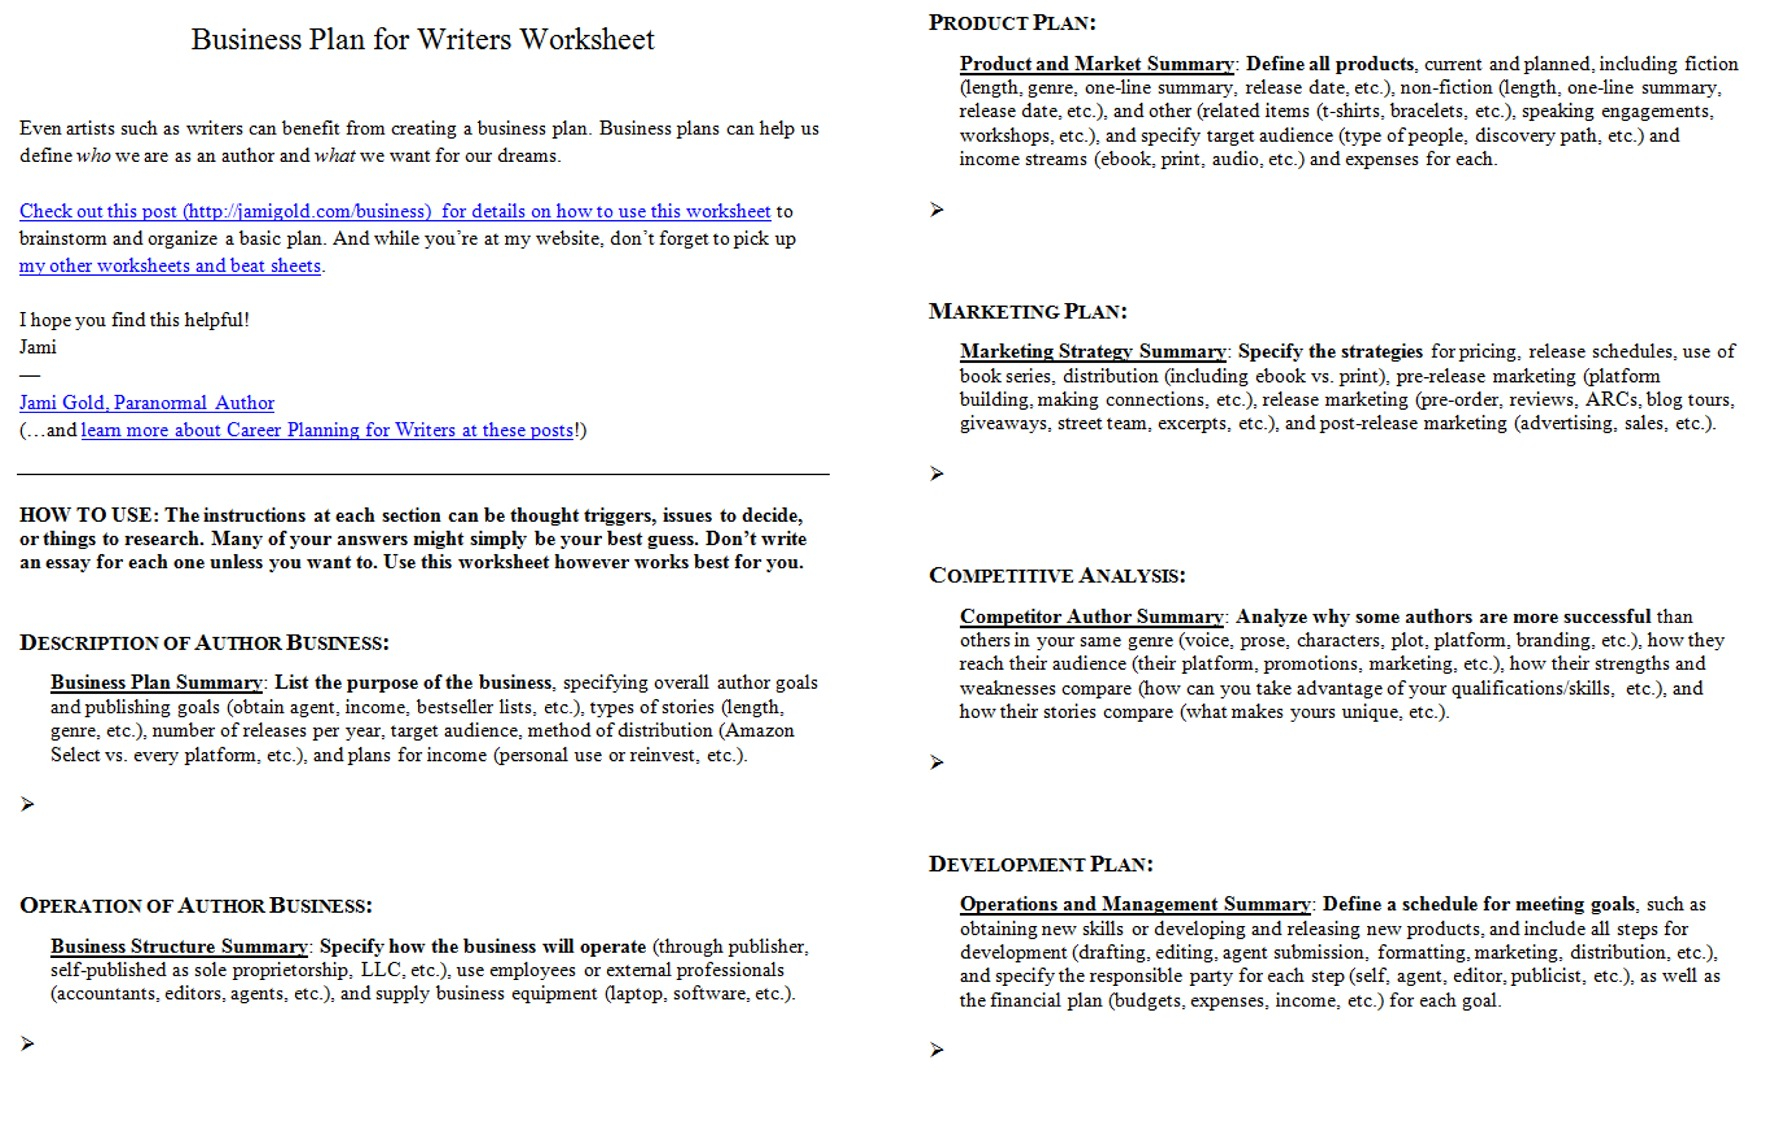 Weirdmailus  Personable Worksheets For Writers  Jami Gold Paranormal Author With Luxury Screen Shot Of Both Pages Of The Business Plan For Writers Worksheet With Amusing Speed Distance Time Calculations Worksheet Also English Prepositions Worksheets In Addition Linear Equations In Two Variables Worksheets Free And Free Worksheets On Prepositions As Well As Cuisenaire Rods Worksheets For Free Additionally Counting And Number Recognition Worksheets From Jamigoldcom With Weirdmailus  Luxury Worksheets For Writers  Jami Gold Paranormal Author With Amusing Screen Shot Of Both Pages Of The Business Plan For Writers Worksheet And Personable Speed Distance Time Calculations Worksheet Also English Prepositions Worksheets In Addition Linear Equations In Two Variables Worksheets Free From Jamigoldcom